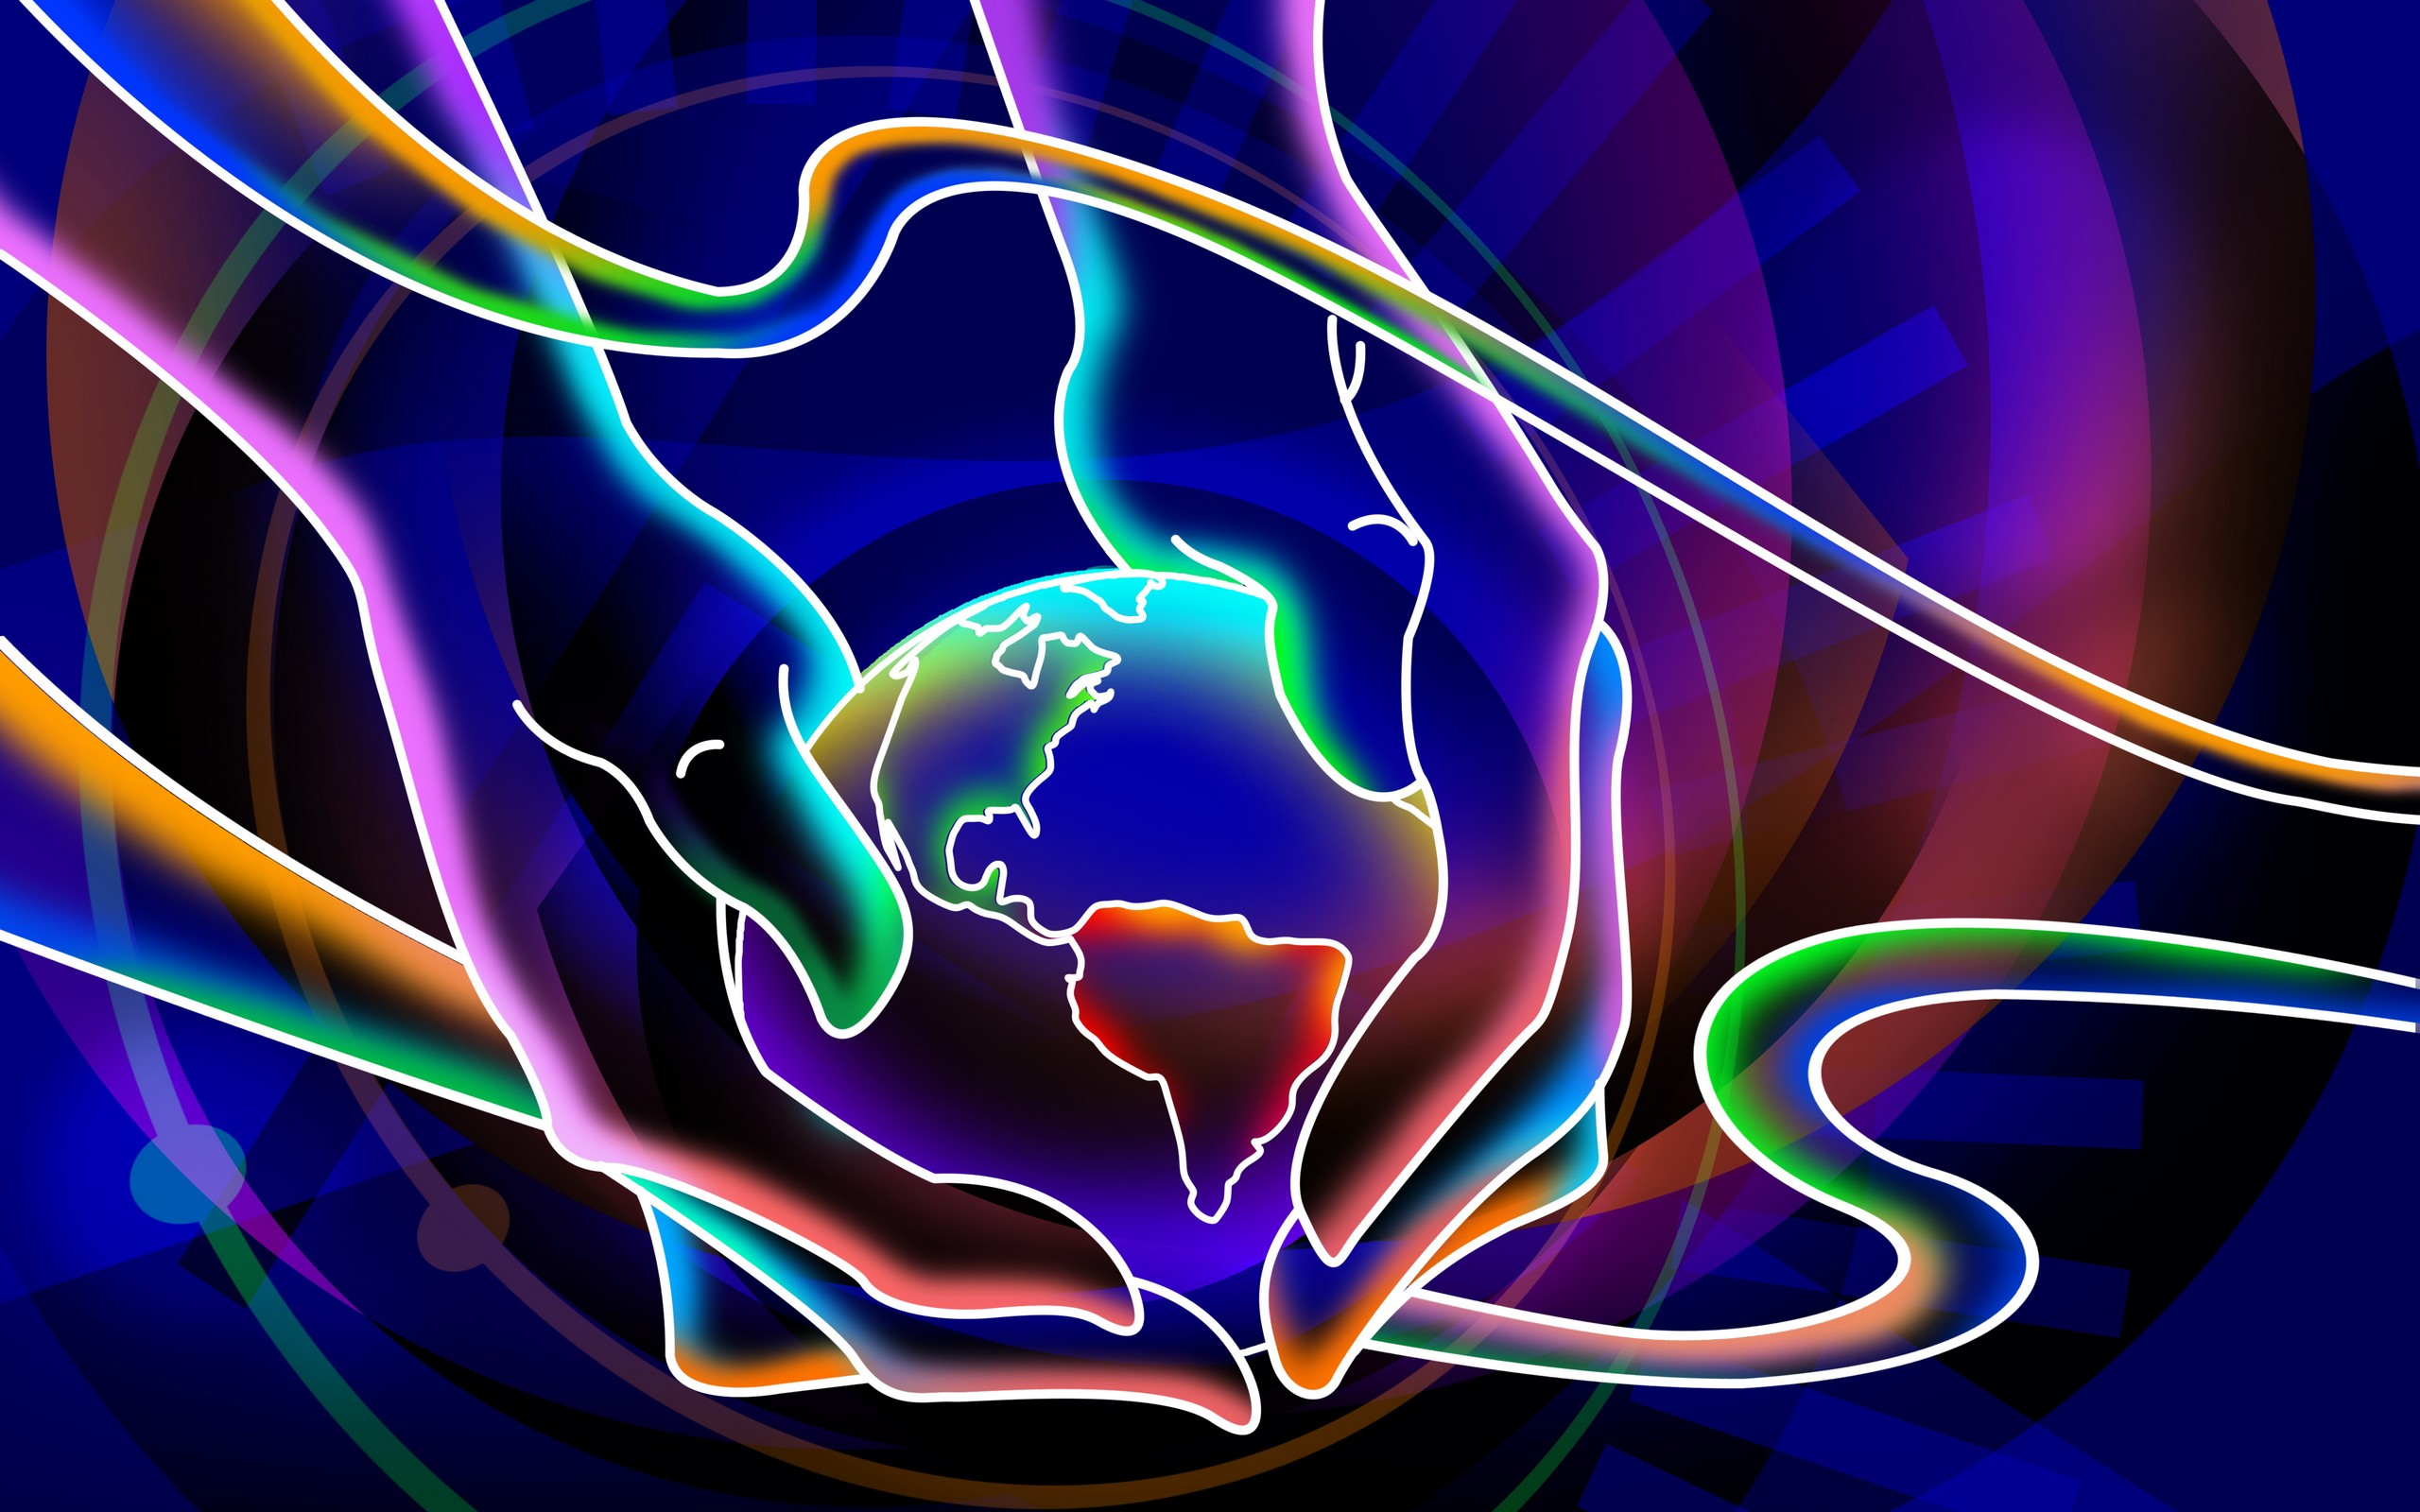 neon-wallpaper-3d-neon-colorful_2560x1600_94624